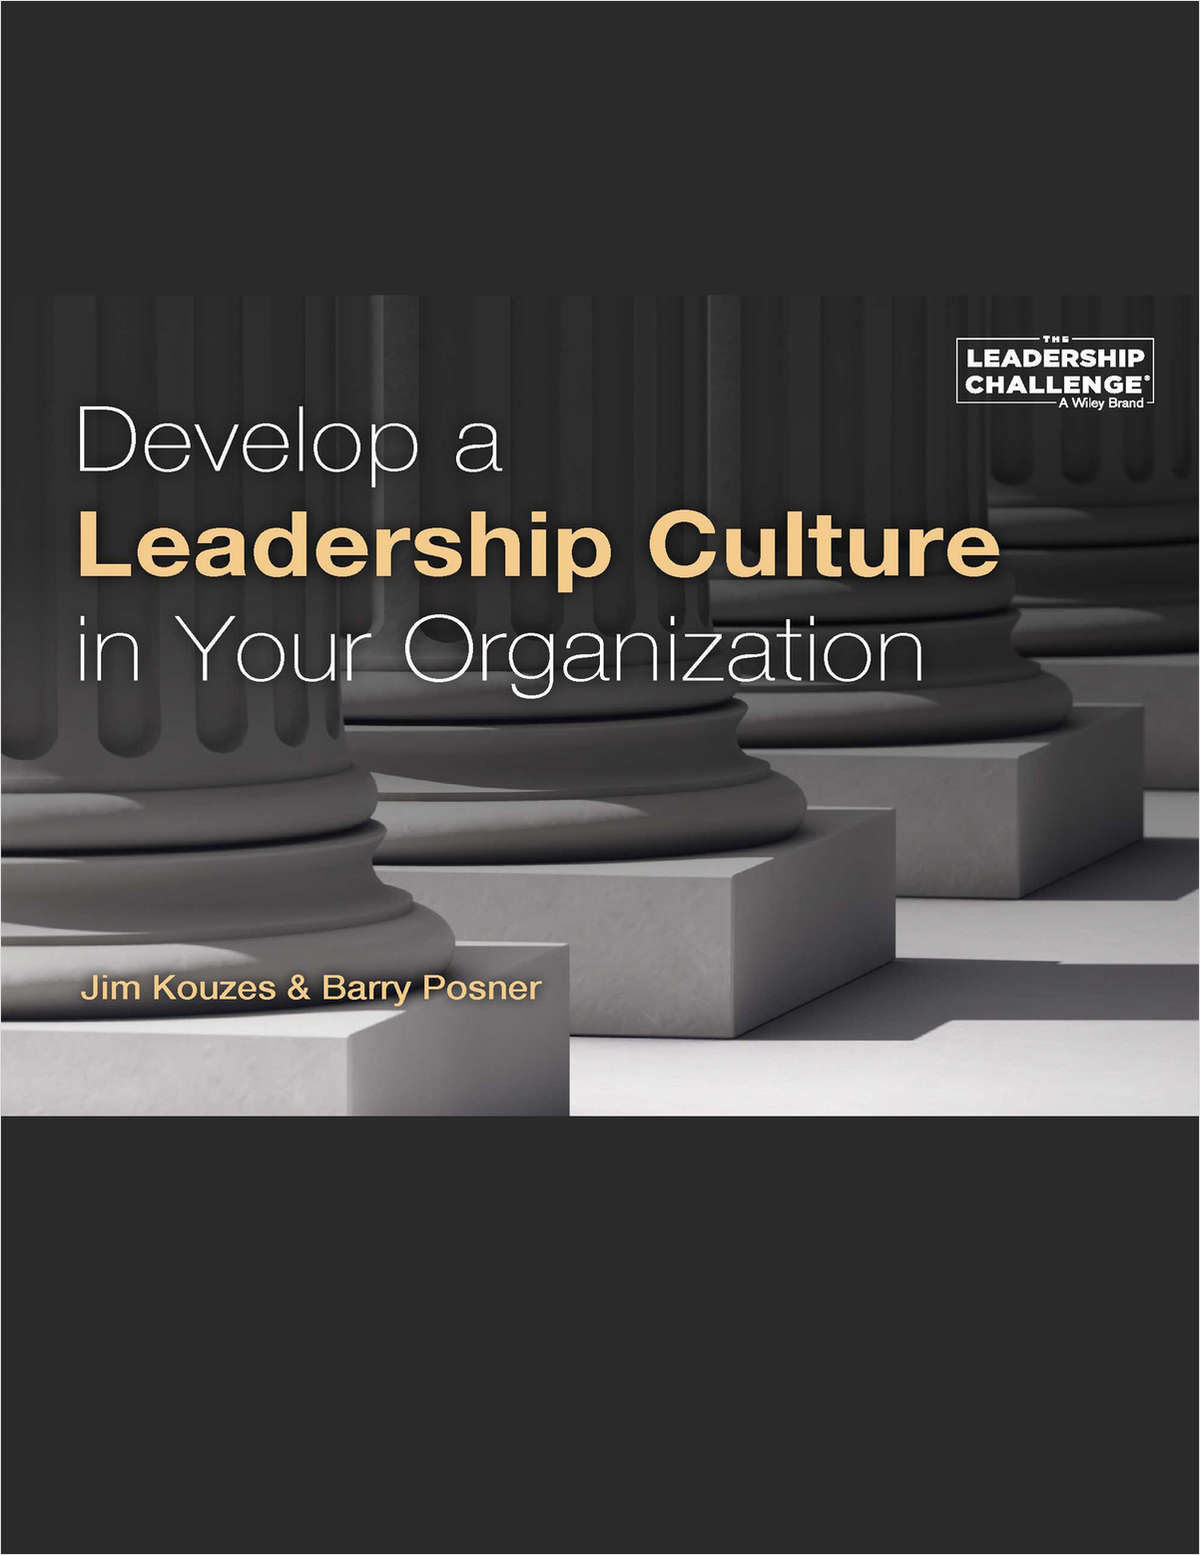 Develop a Leadership Culture in Your Organization